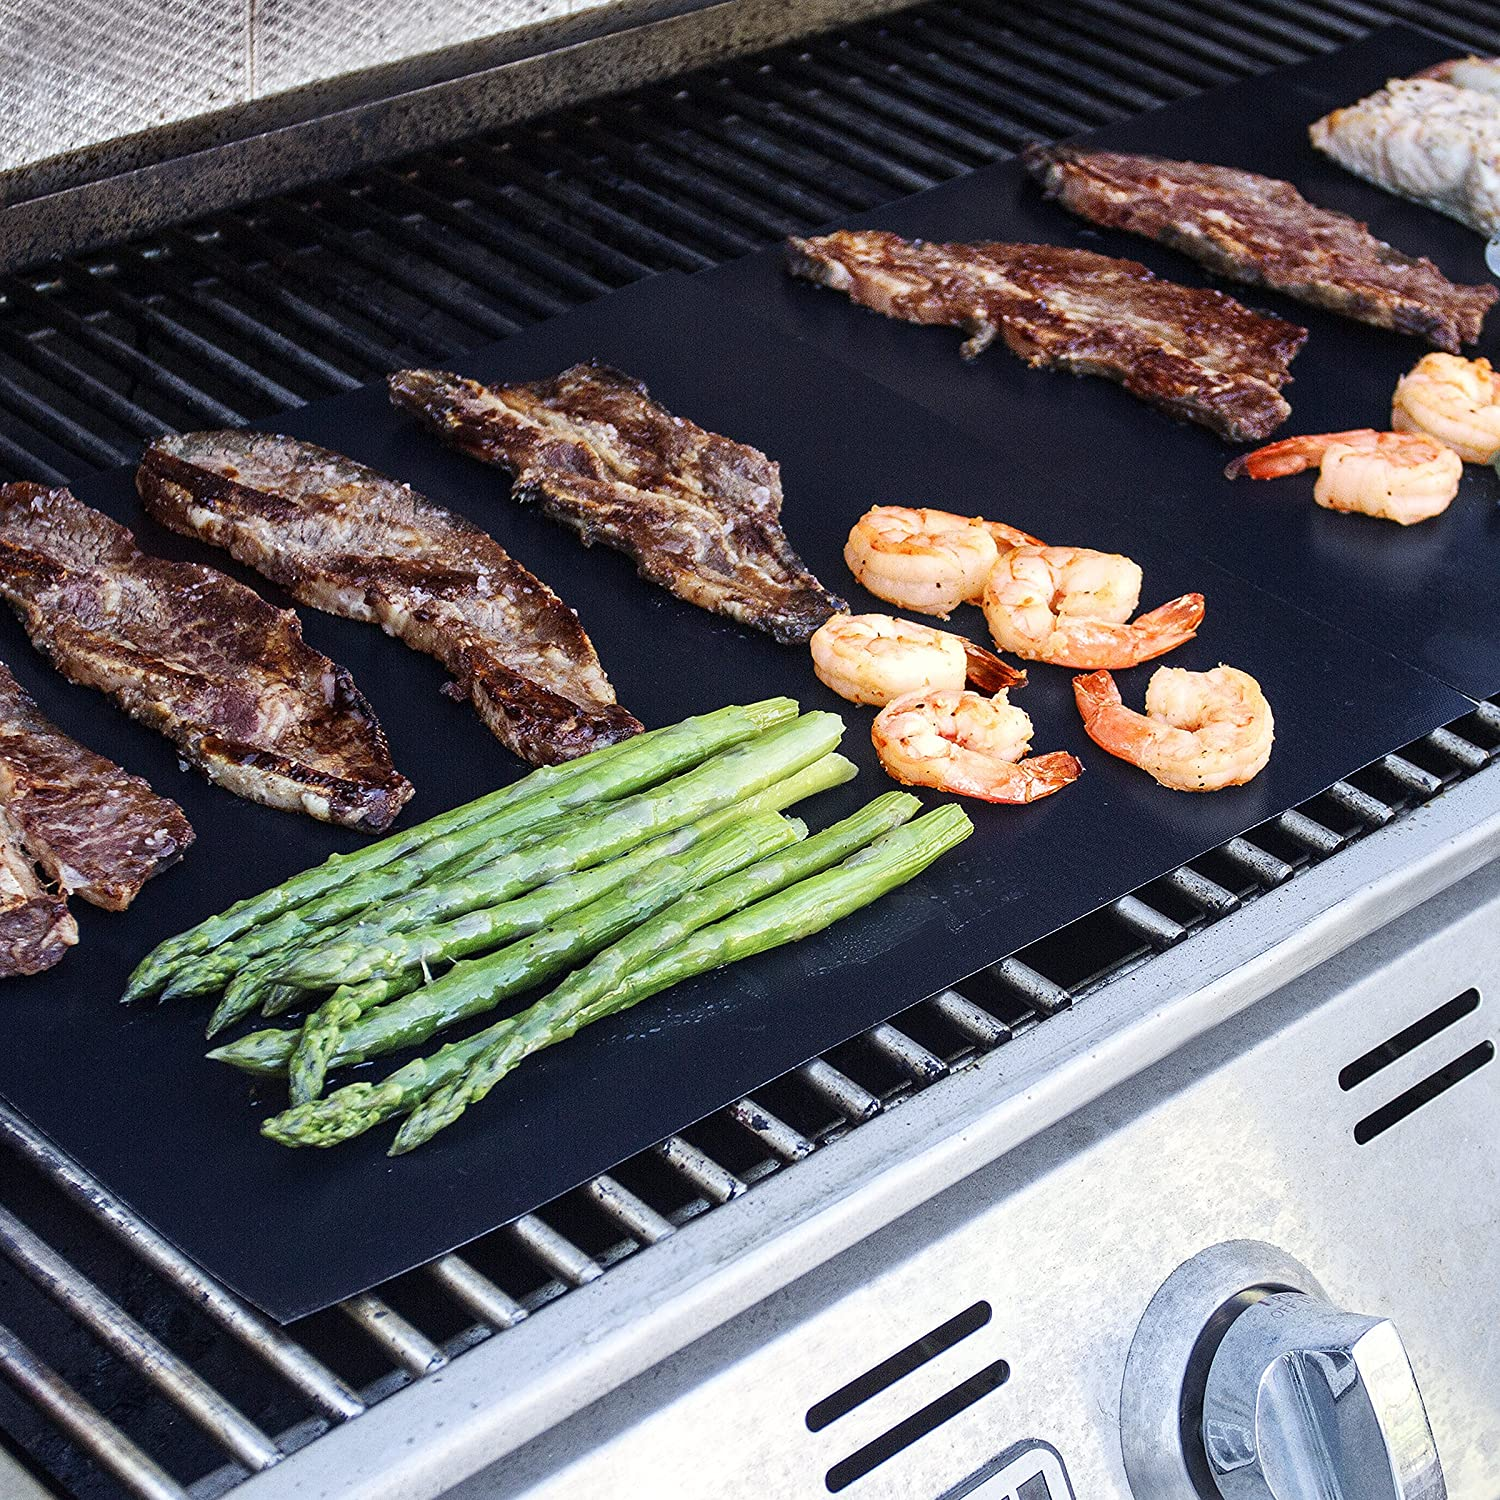 Kitchen + home bbq grill mats